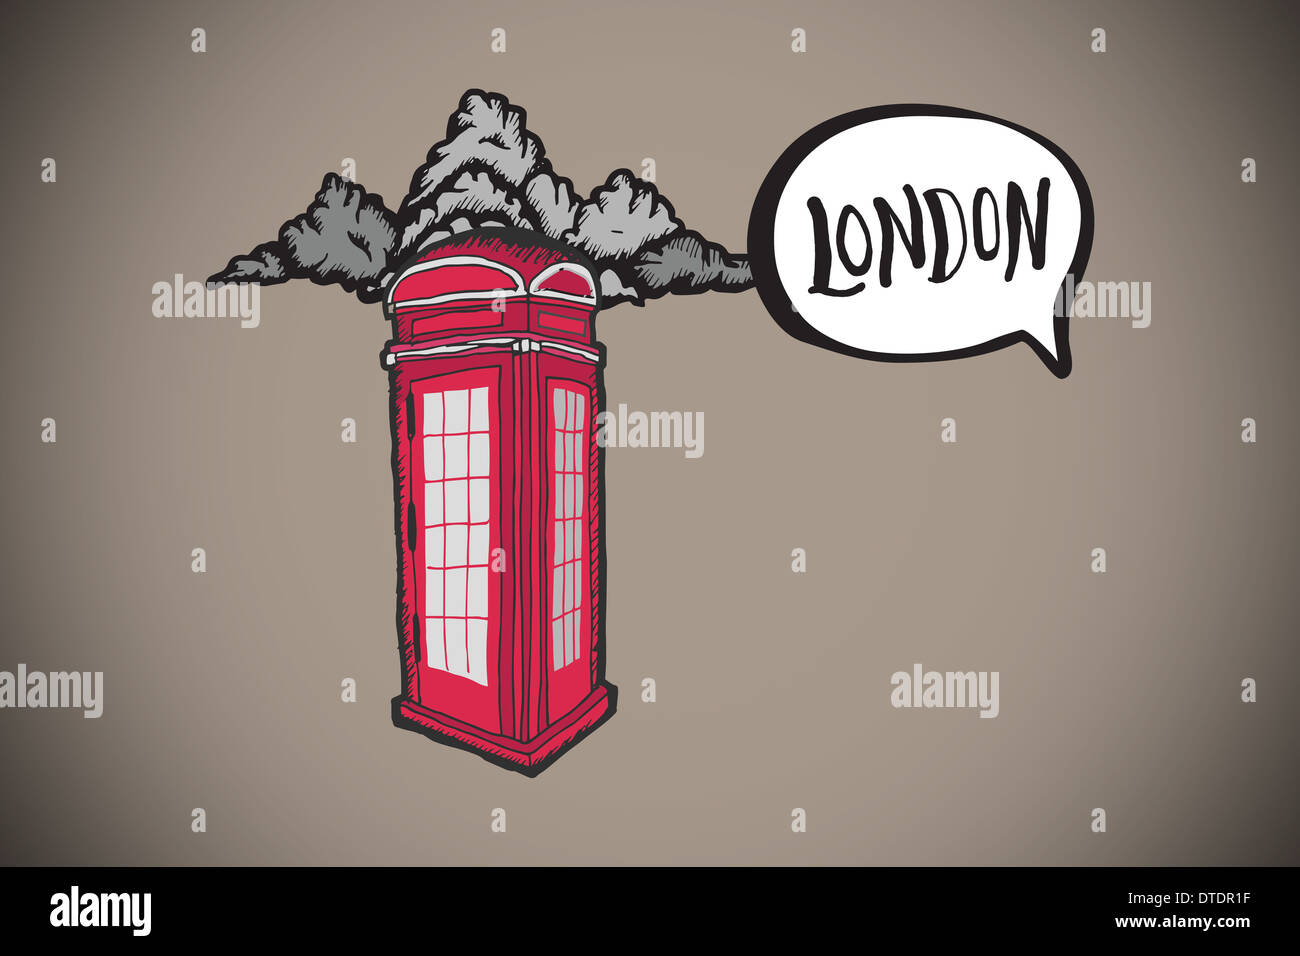 Composite image of london doodle with phone box - Stock Image